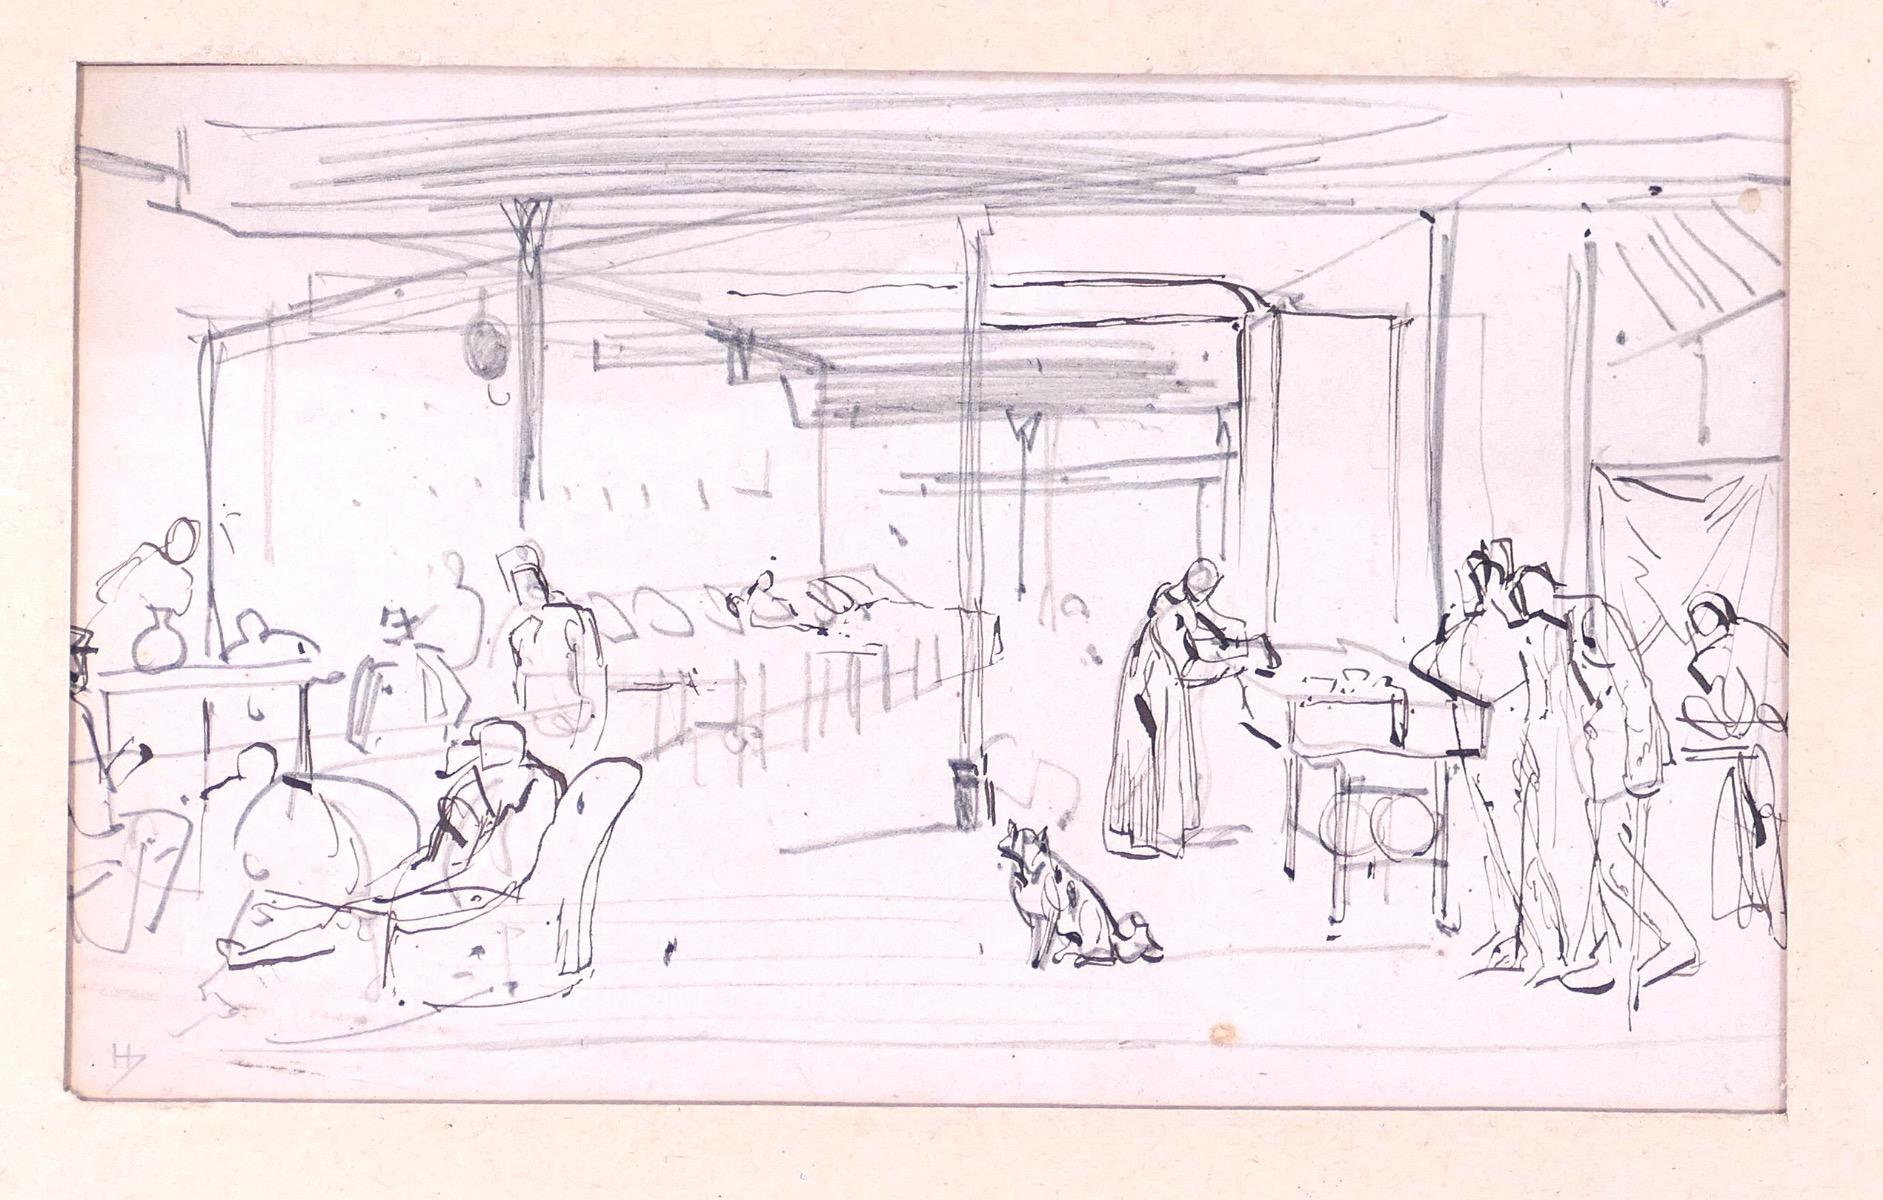 People in room with dog in the middle - Original Pencil and Ink by T. Johannot